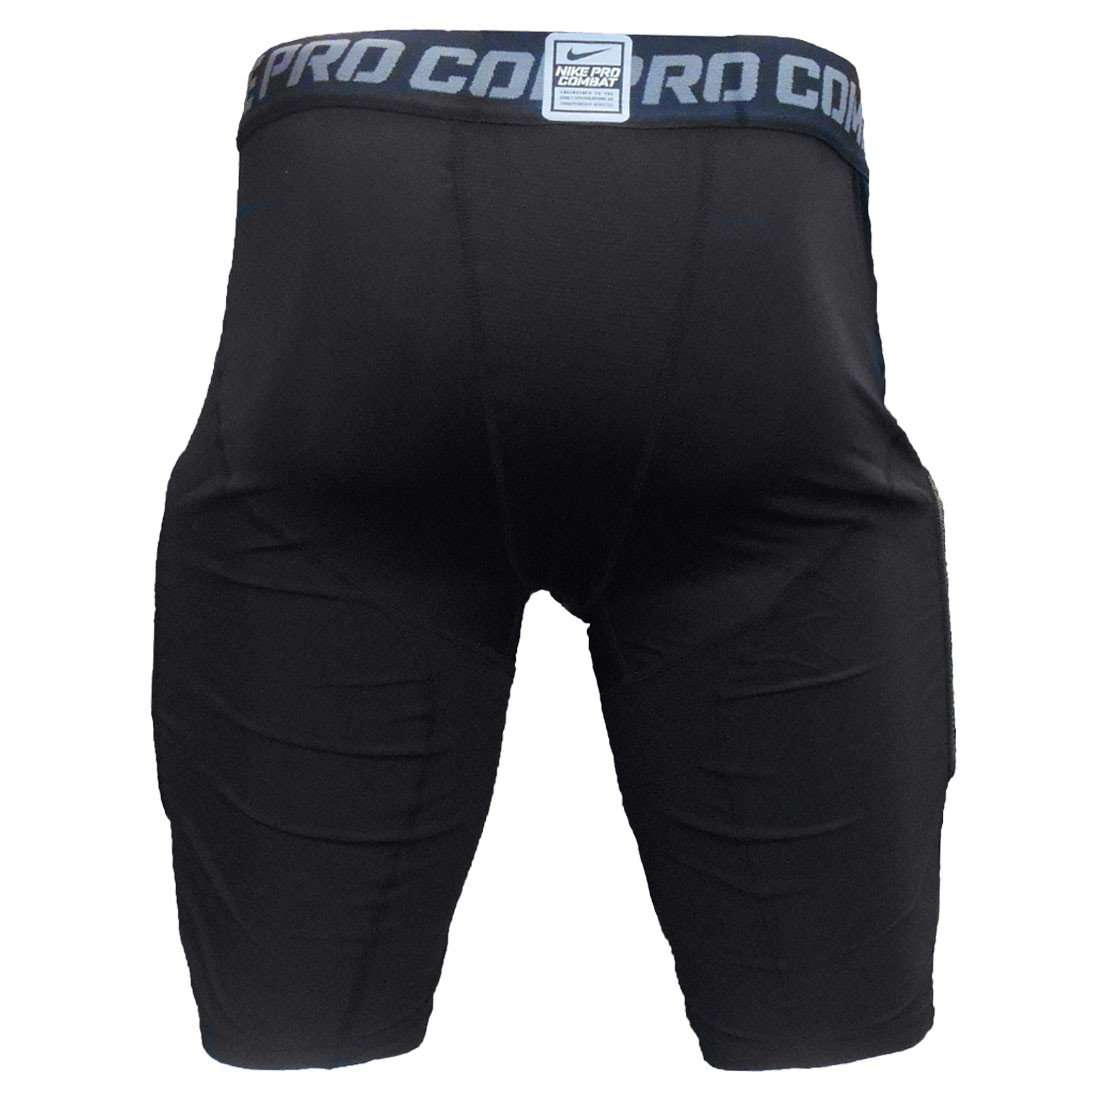 nike pro combat hard plate compression football girdle league outfitters. Black Bedroom Furniture Sets. Home Design Ideas